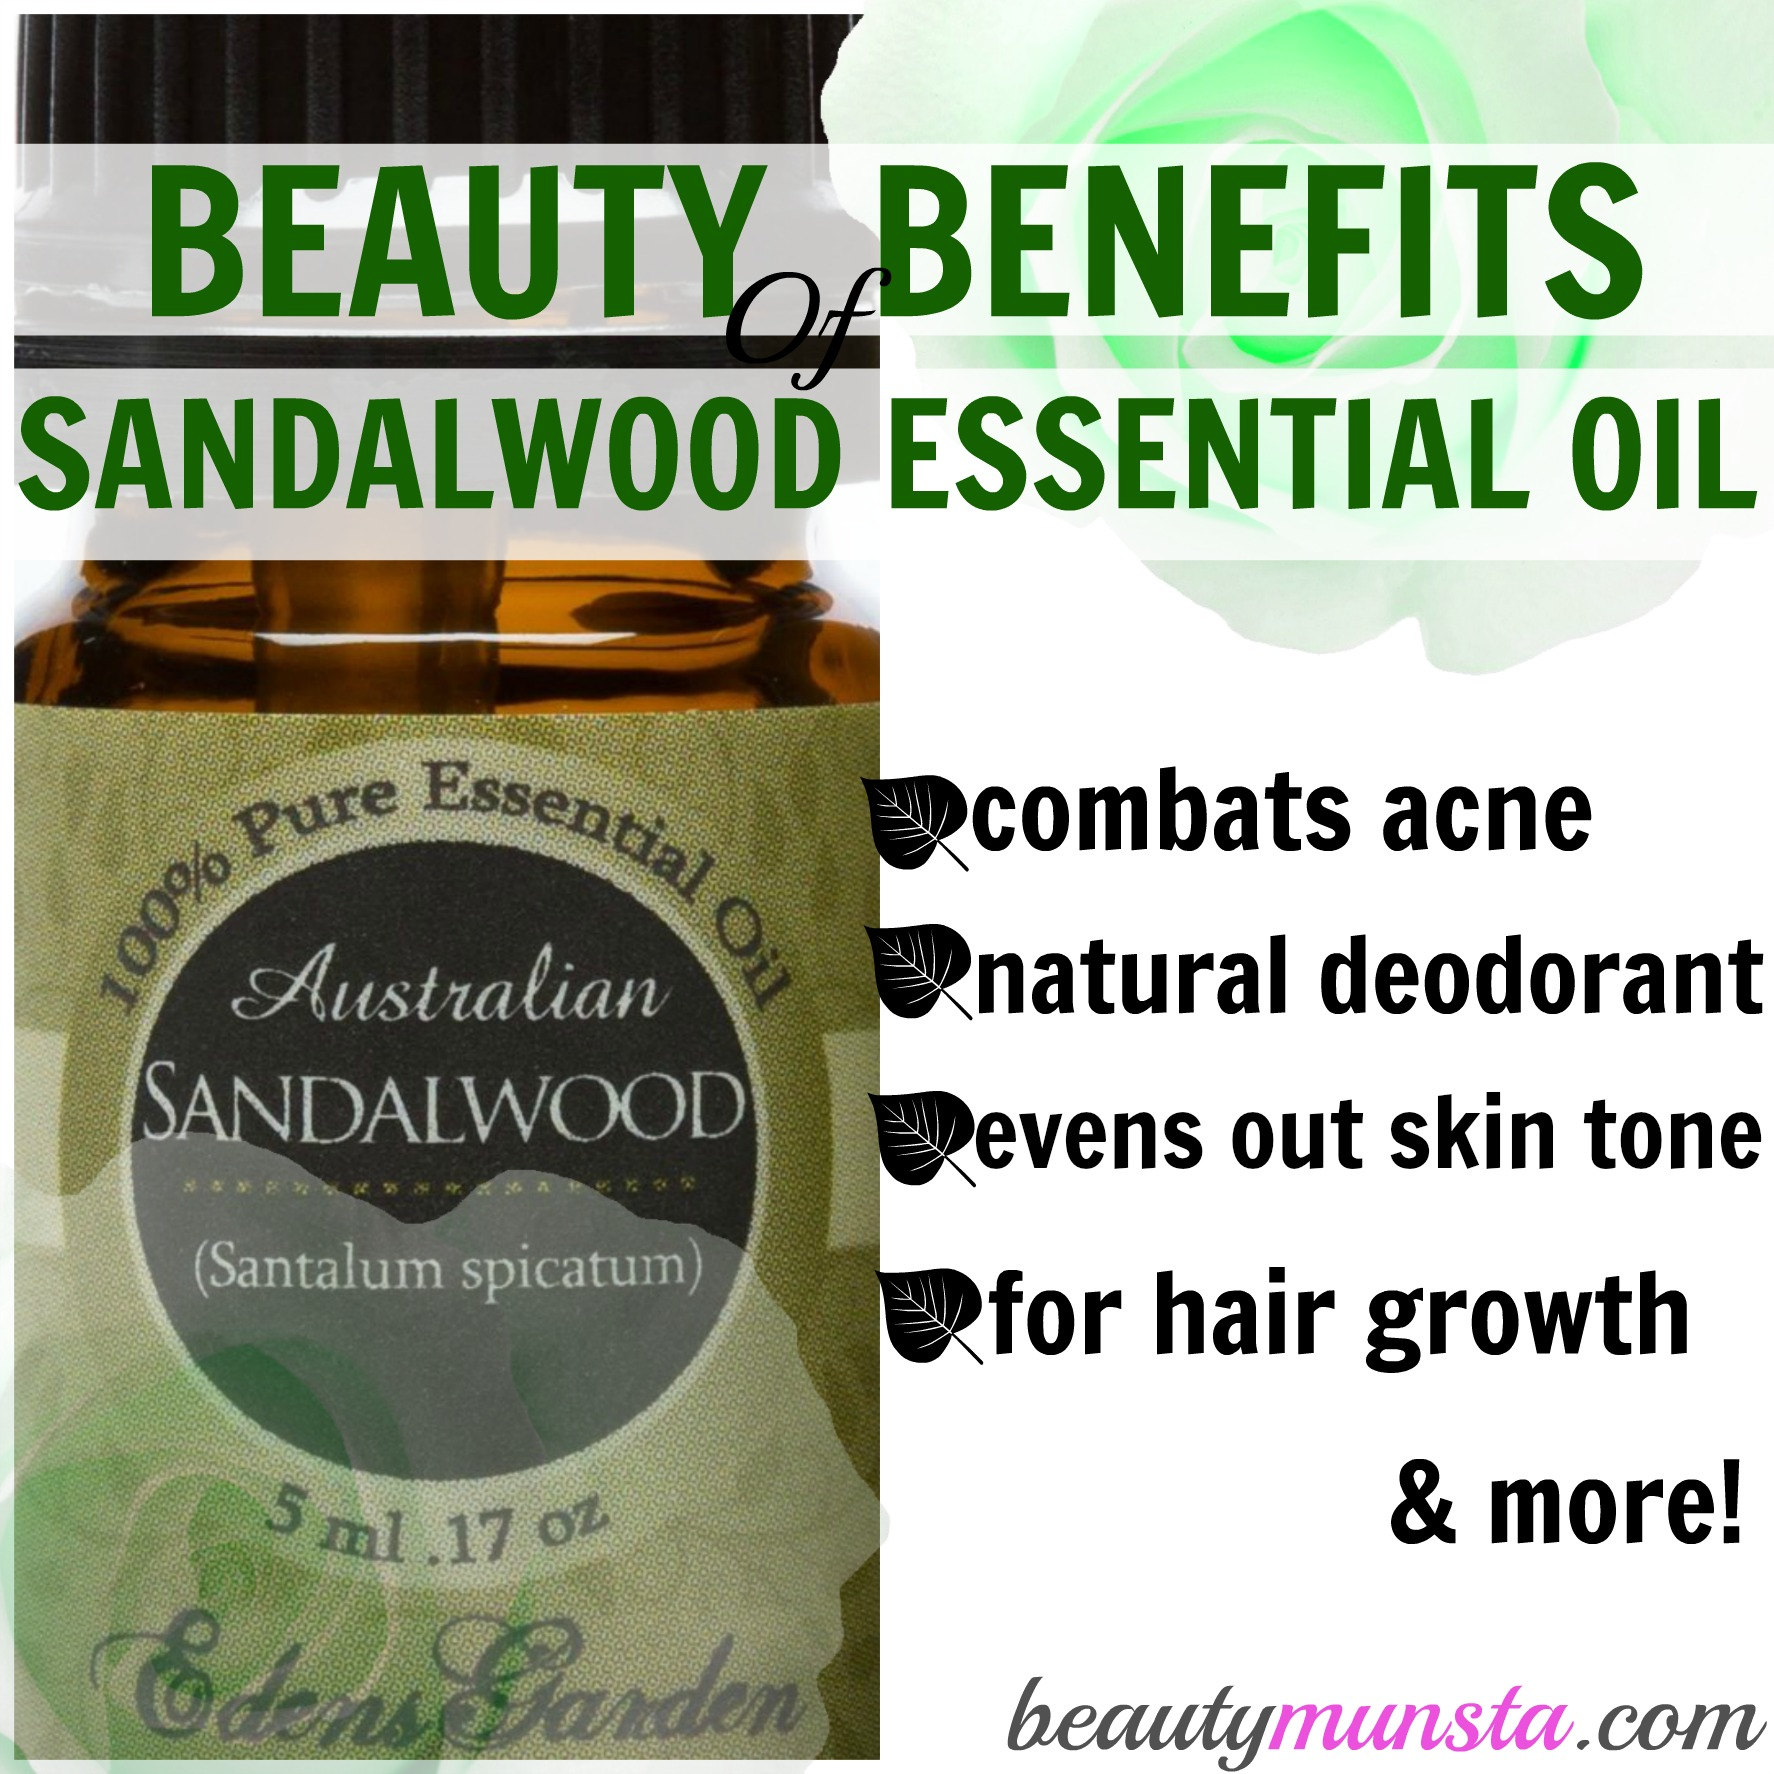 Benefits Essential For 10 Beauty Oil Skinamp; Hair Of Sandalwood UVpGzqMS